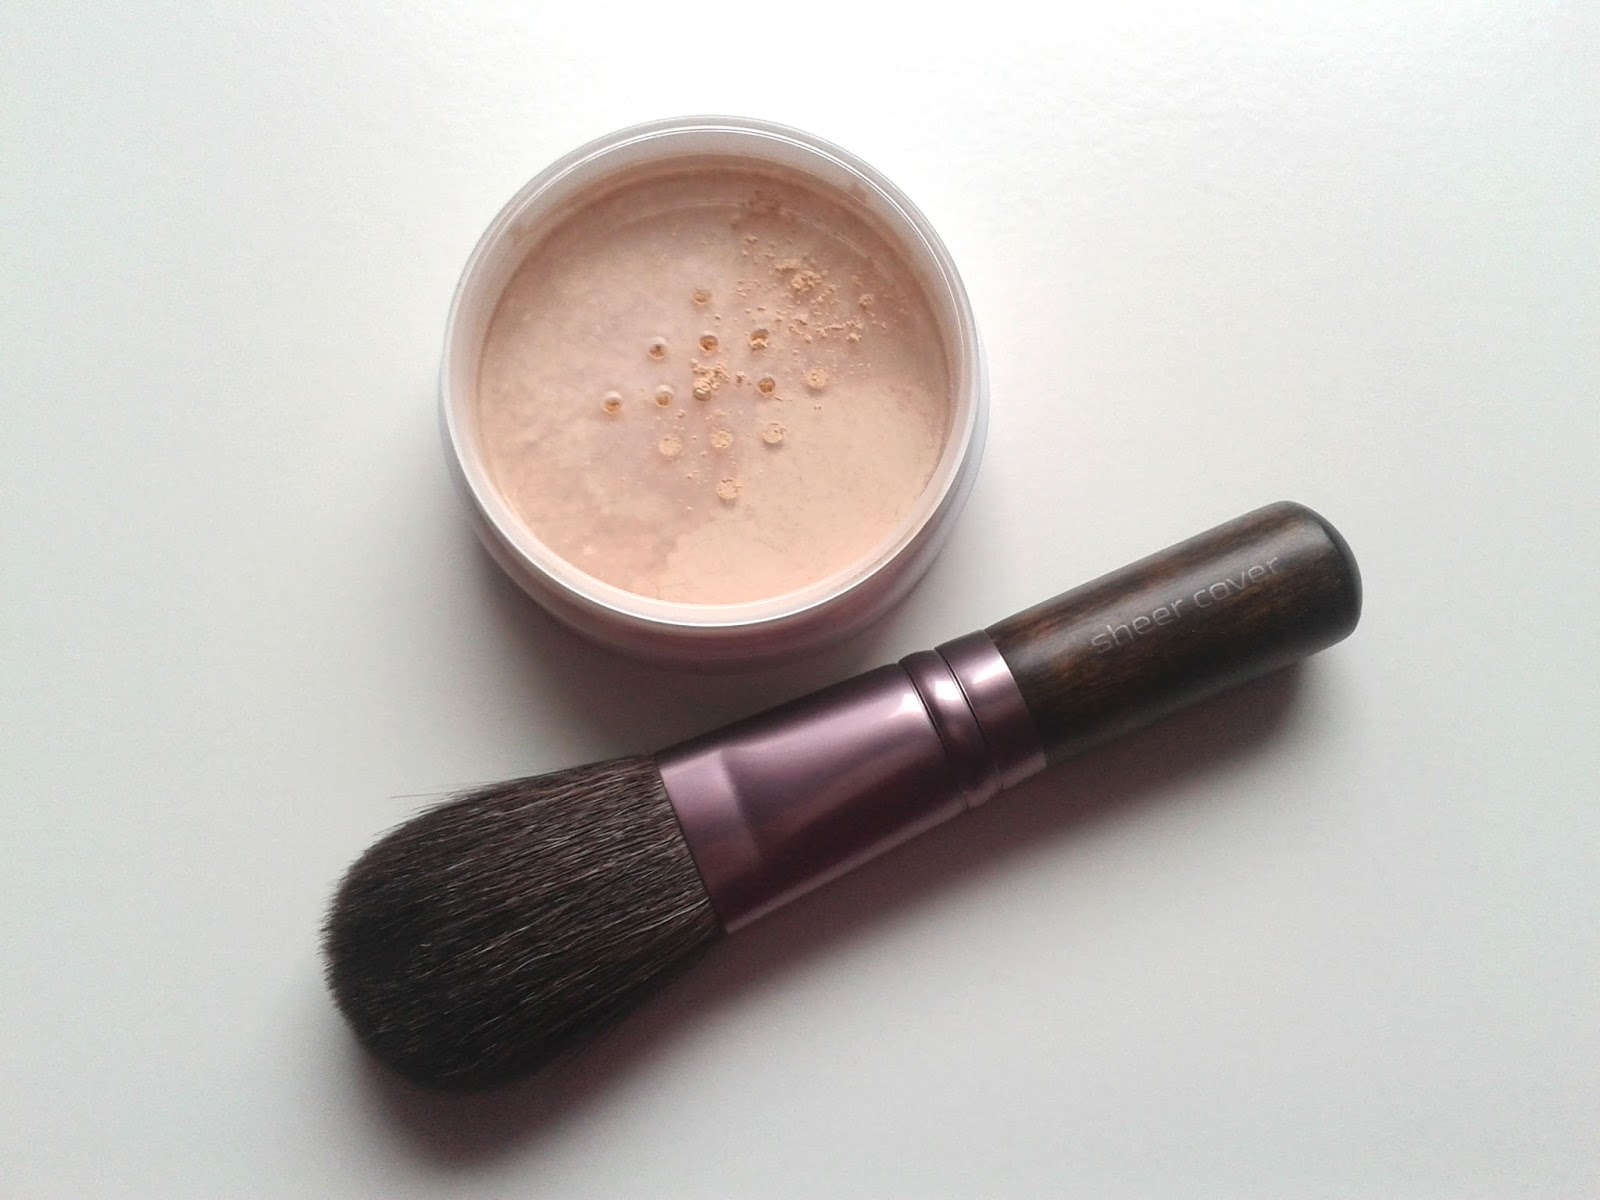 Sheer Cover Studio Perfect Shade Mineral Foundation